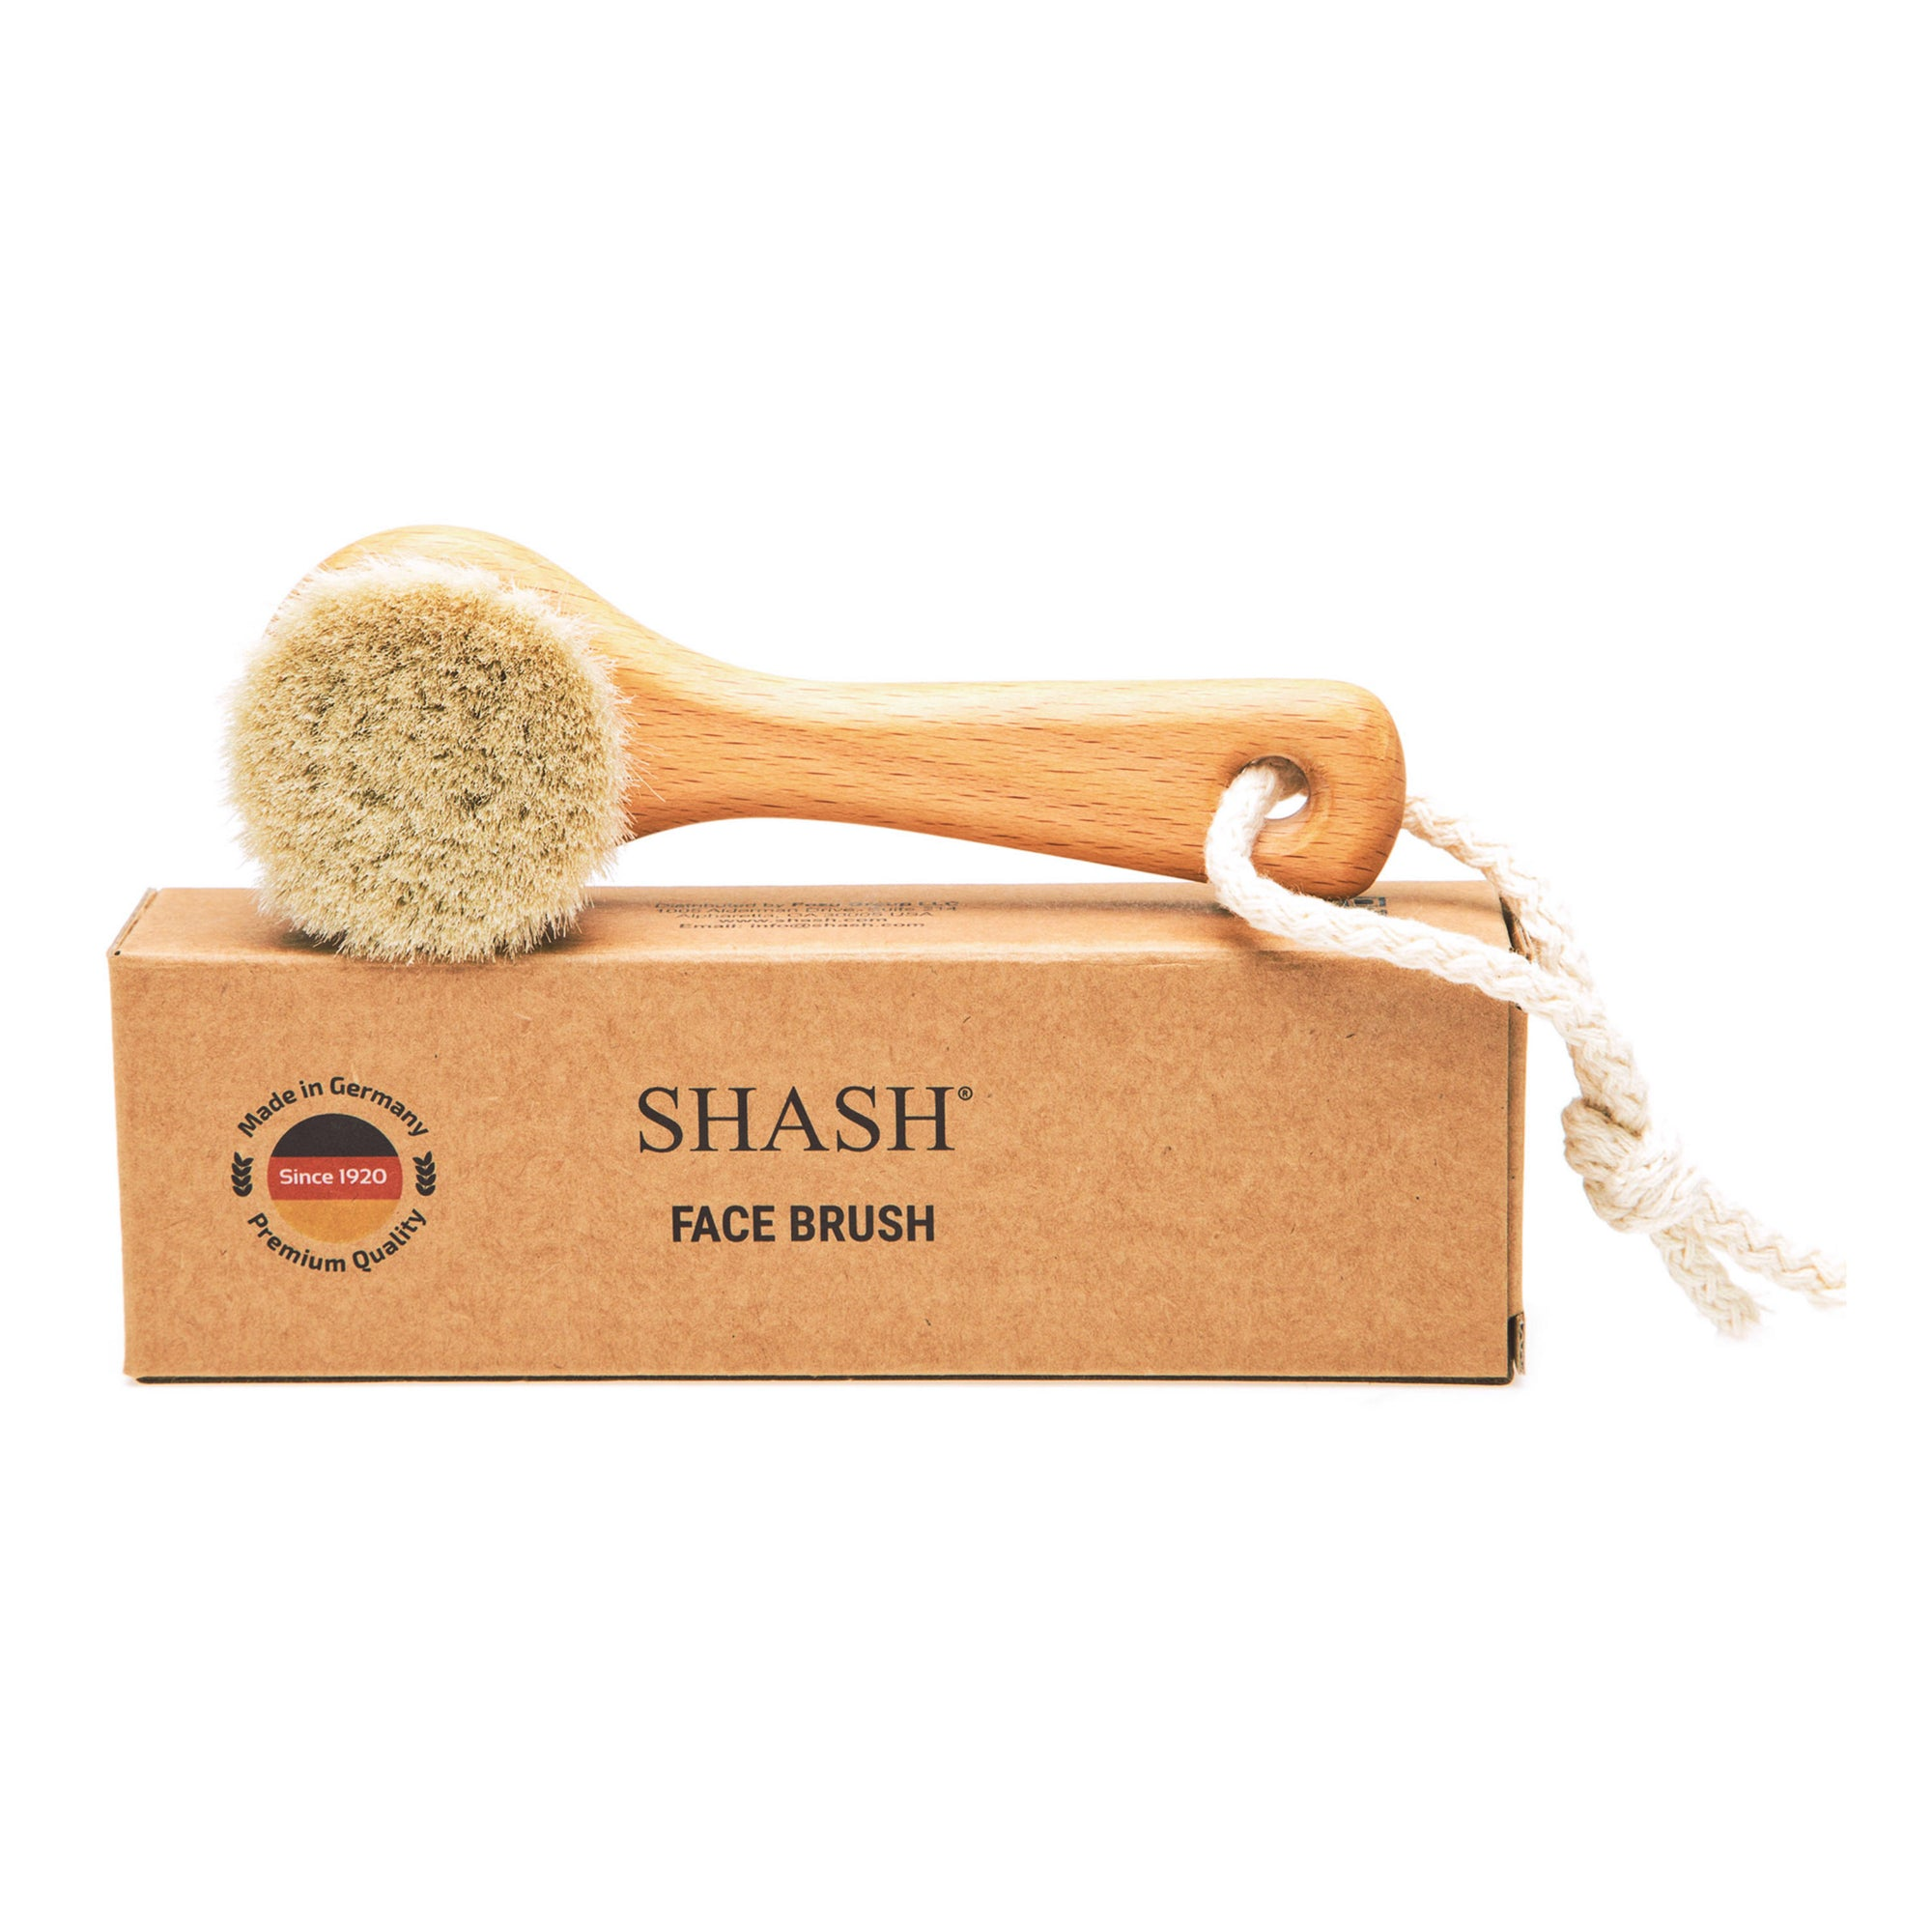 THE SOFT SCRUB FACE BRUSH